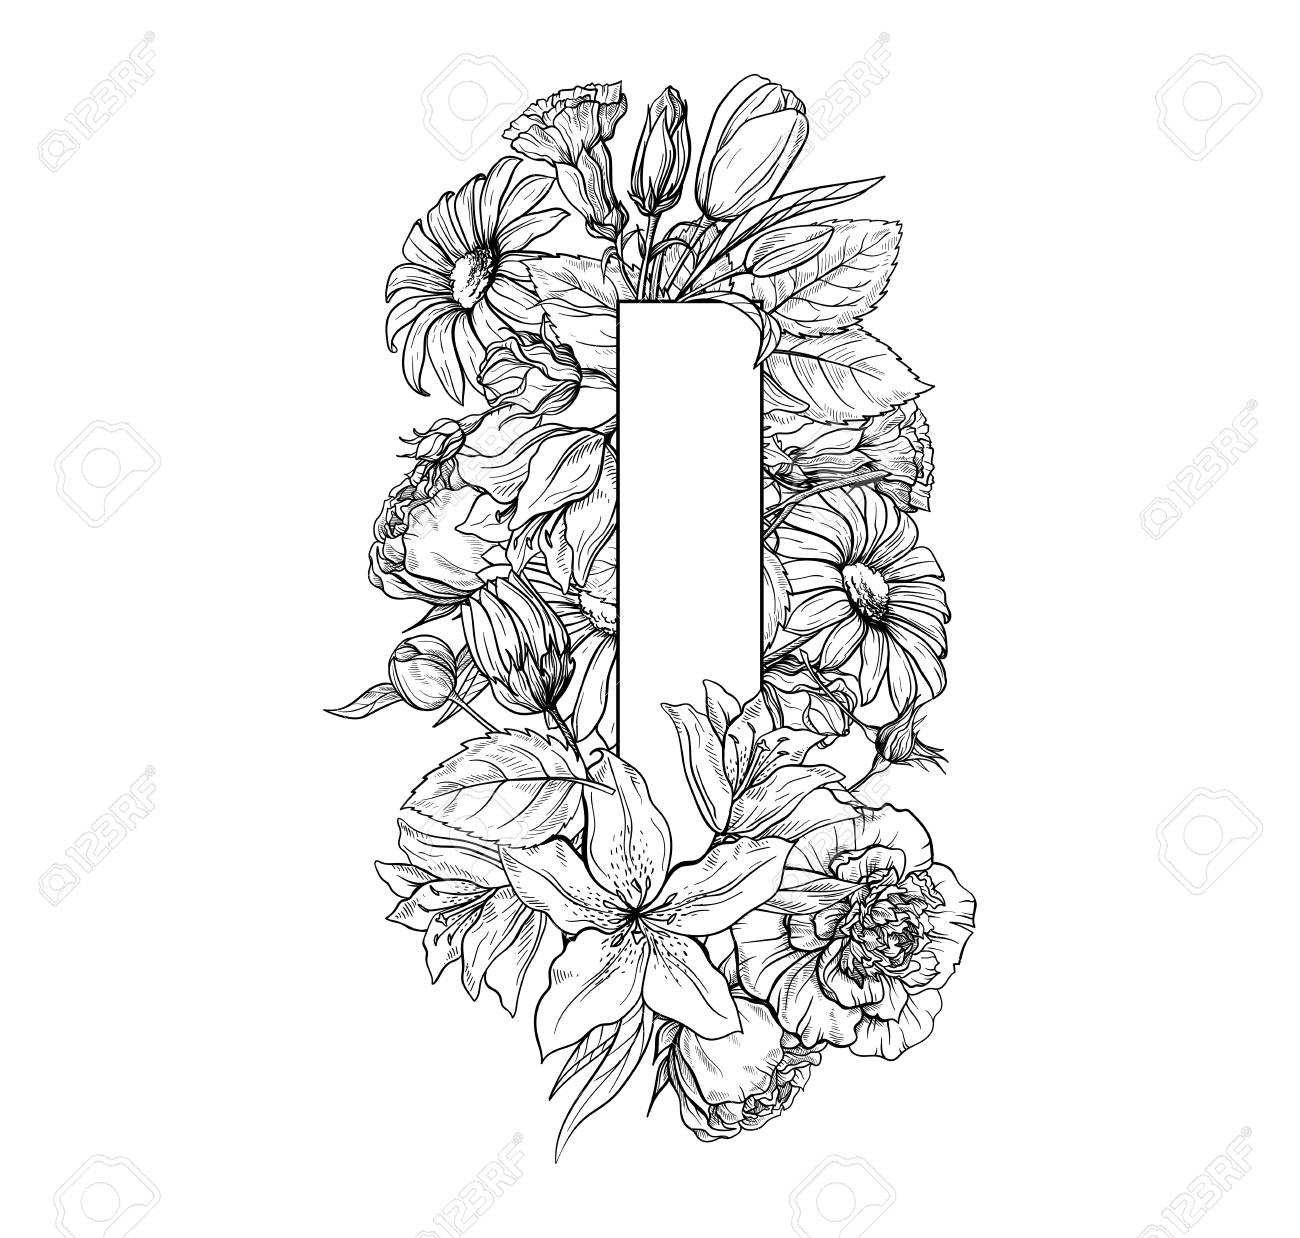 Vintage Flower Alphabet Hand Drawn Vector Illustration Isolated Royalty Free Cliparts Vectors And Stock Illustration Image 99864081